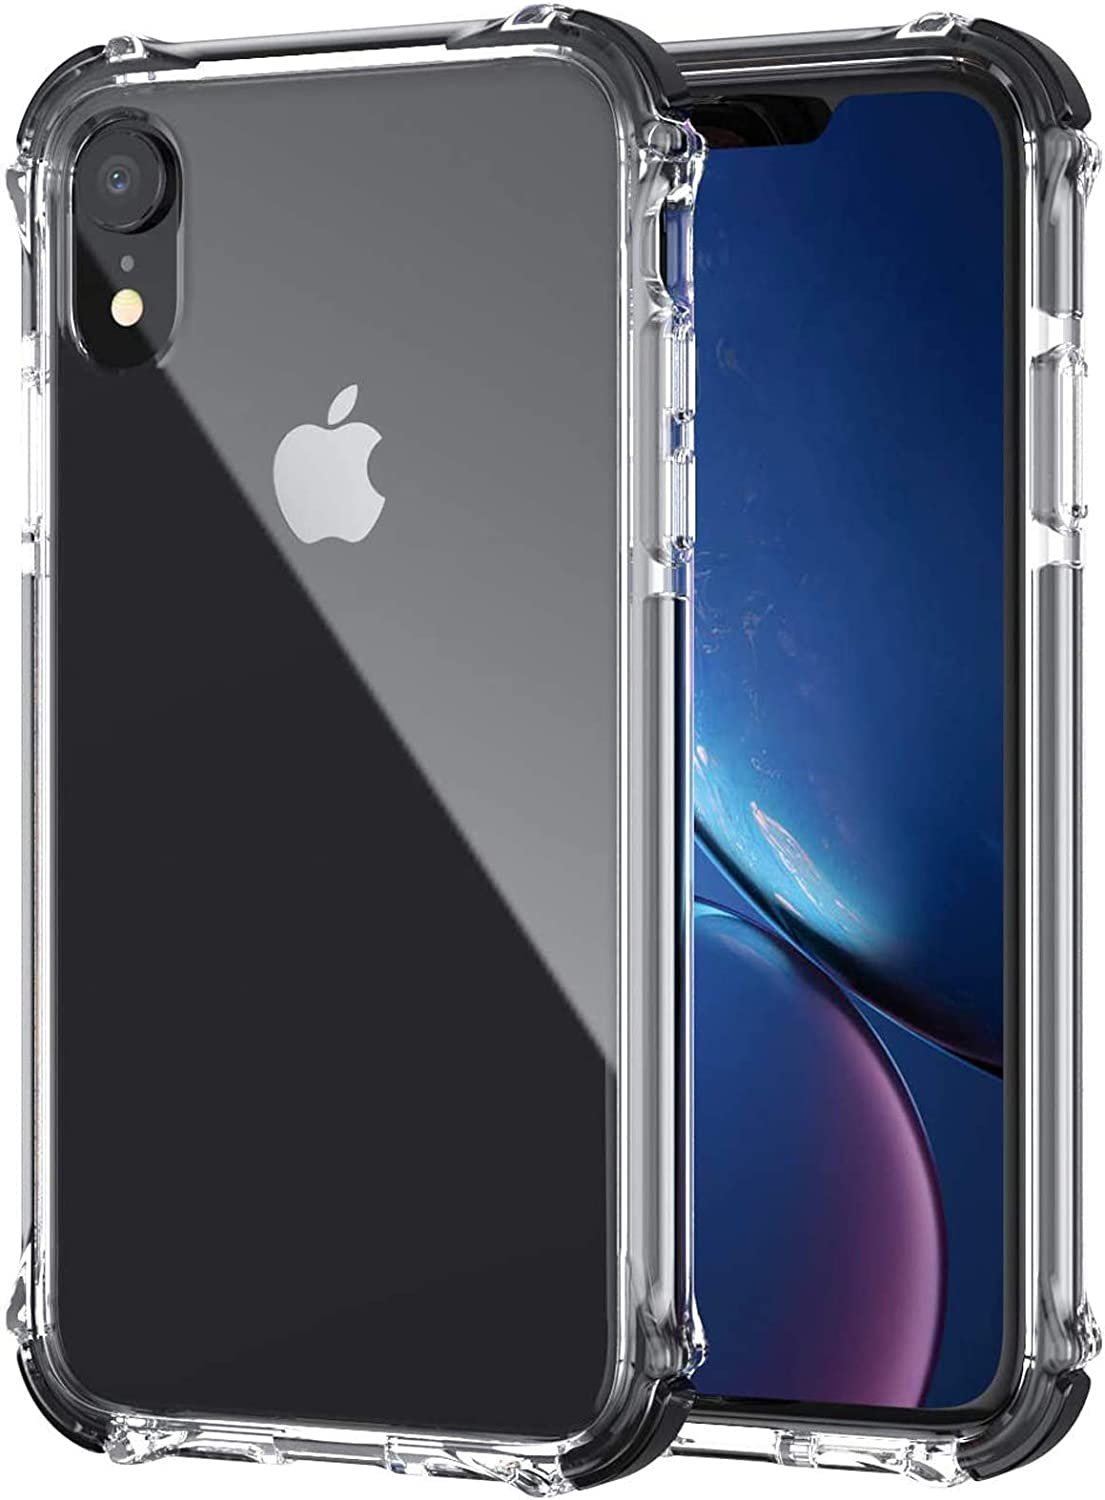 GPFILE Clear iPhone xr case,iPhone XR Shockproof Case with TPU Soft iPhone xr Cases 4 Corners Drop Resistance Bumper Designed for iPhone XR 6.1 inch